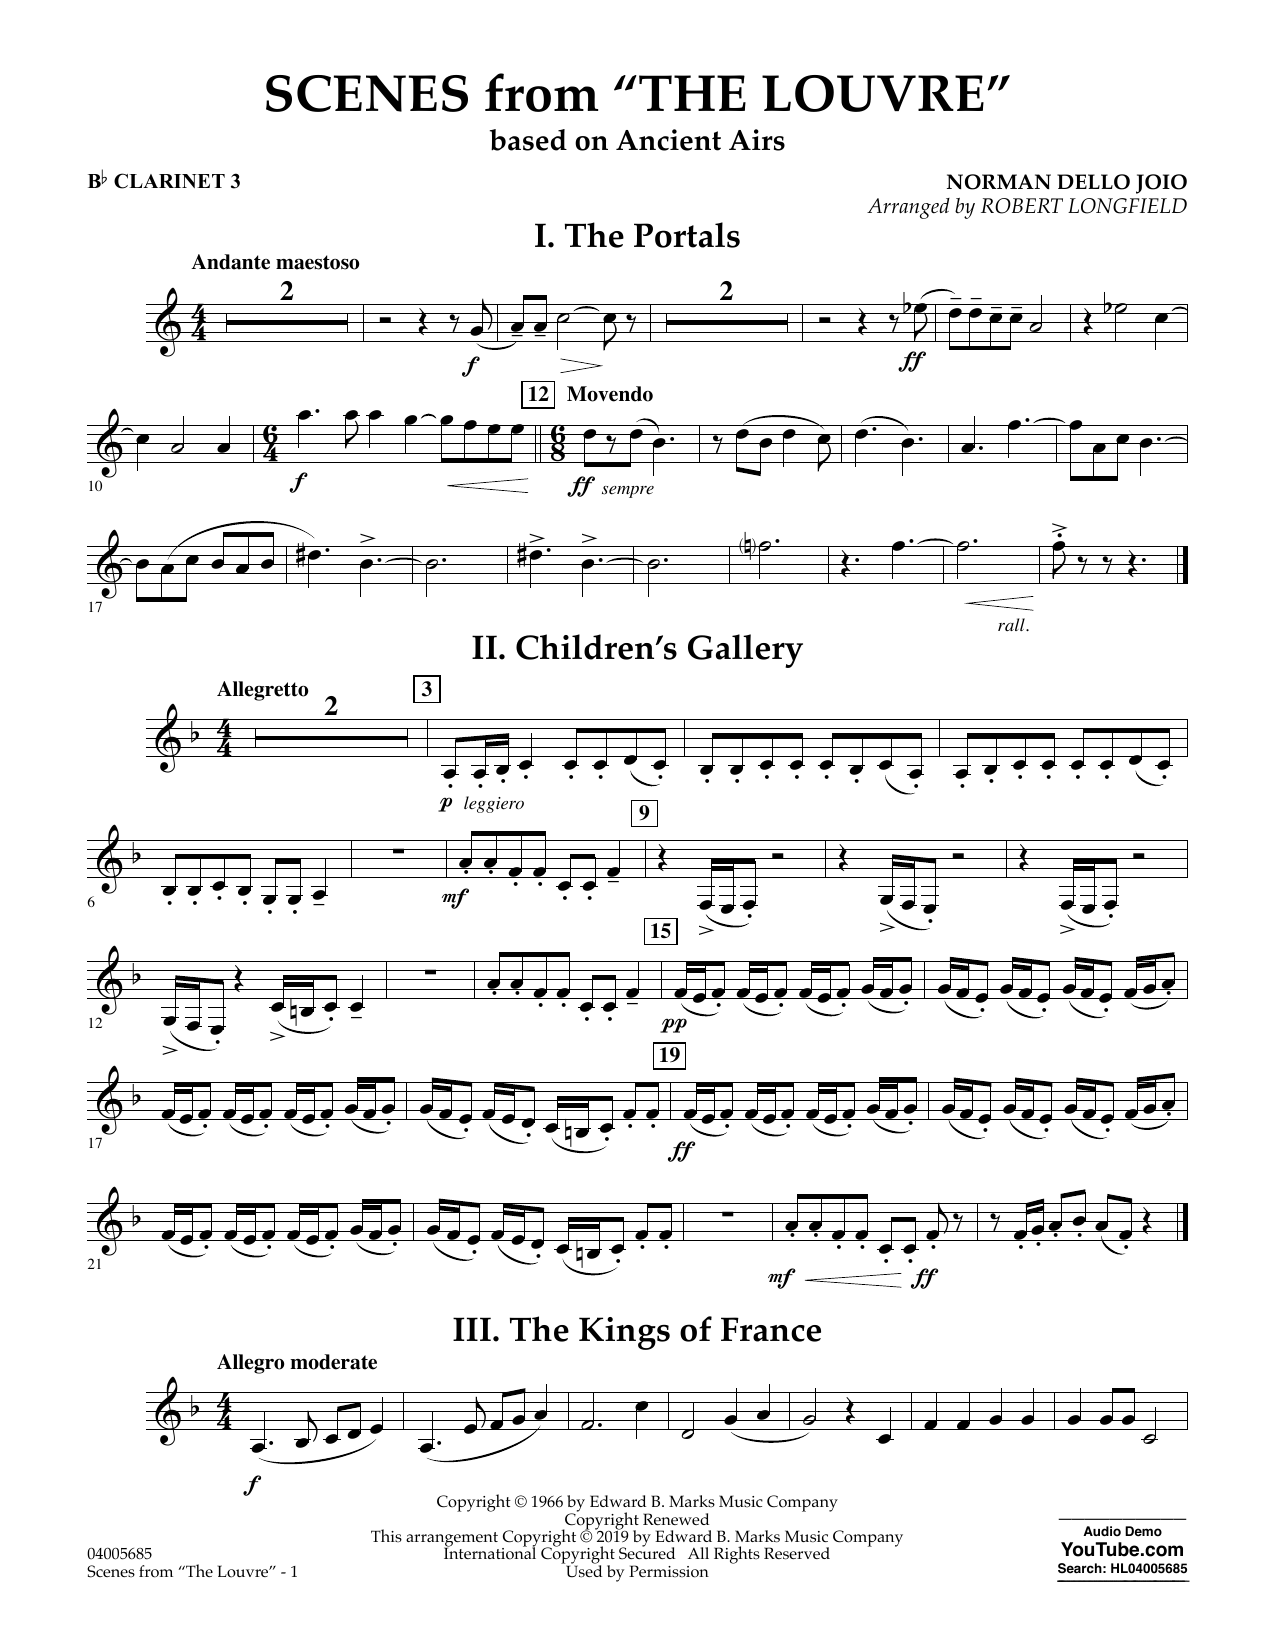 Norman Dello Joio Scenes from the Louvre (arr. Robert Longfield) - Bb Clarinet 3 sheet music preview music notes and score for Concert Band including 2 page(s)